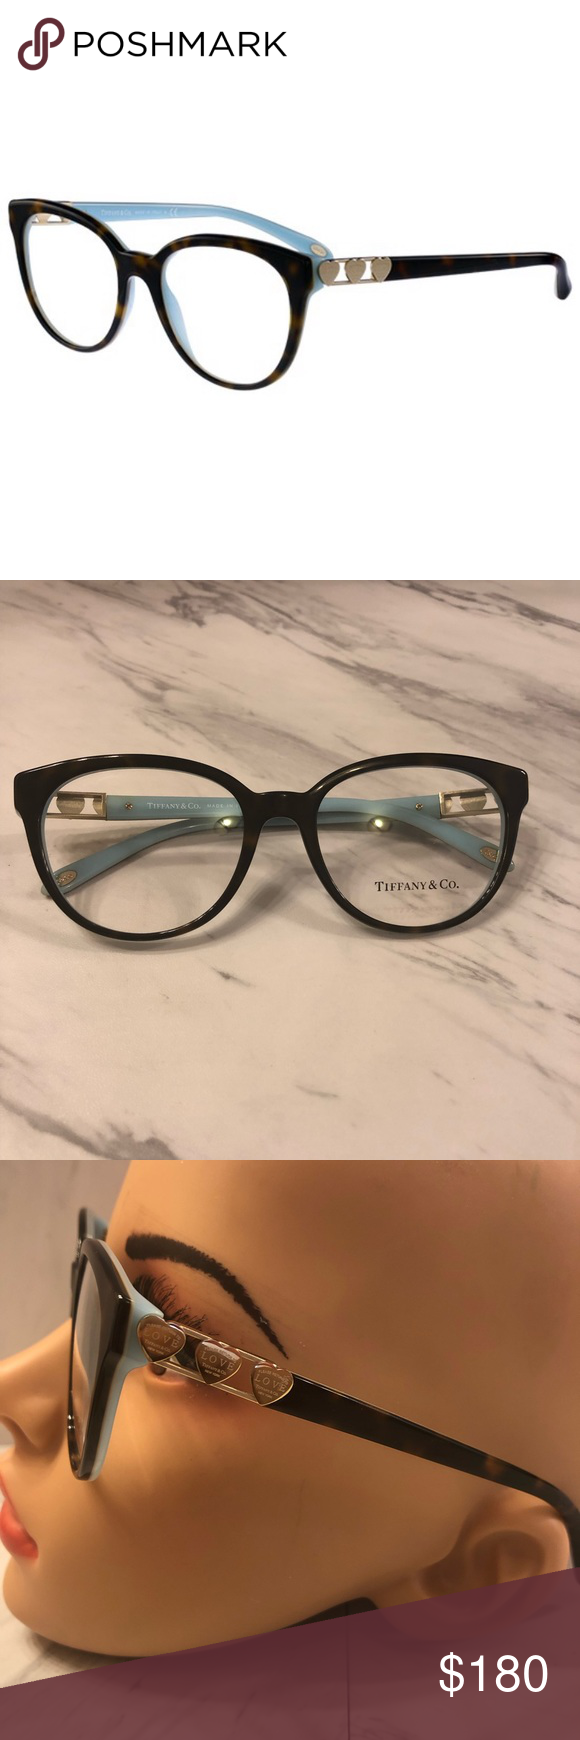 95f1f09132cf Spotted while shopping on Poshmark  Authentic Tiffany and Co. Eye Glasses!   poshmark